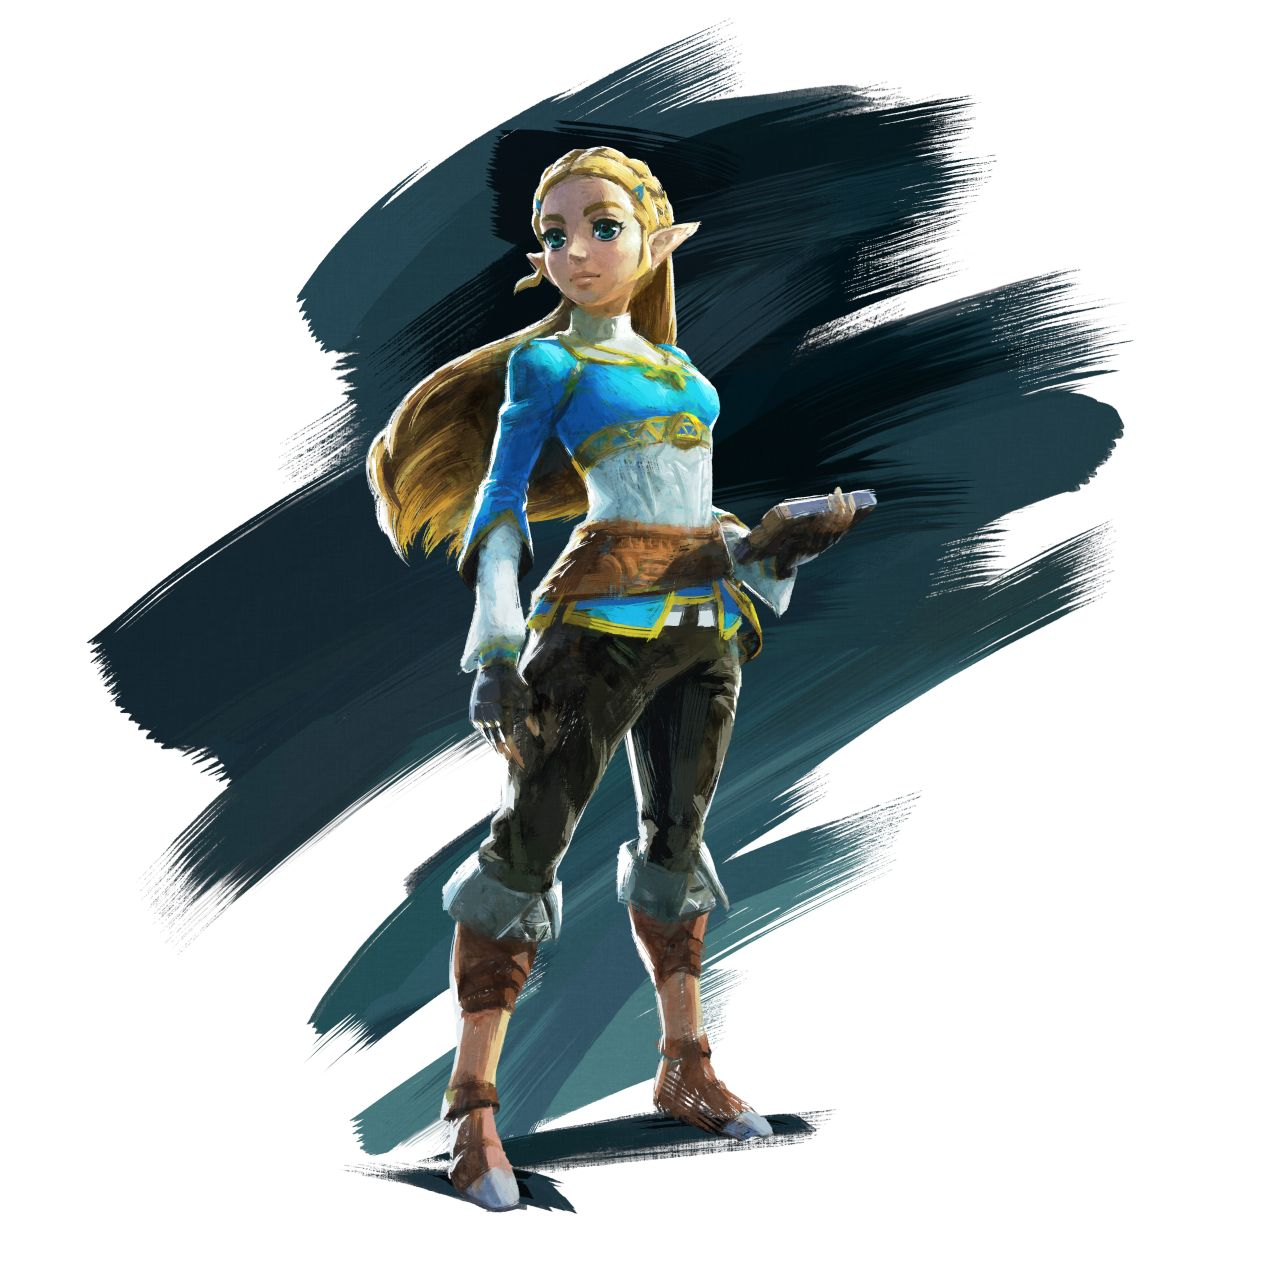 the_legend_of_zelda_breath_of_the_wild_artwork_switch (4)